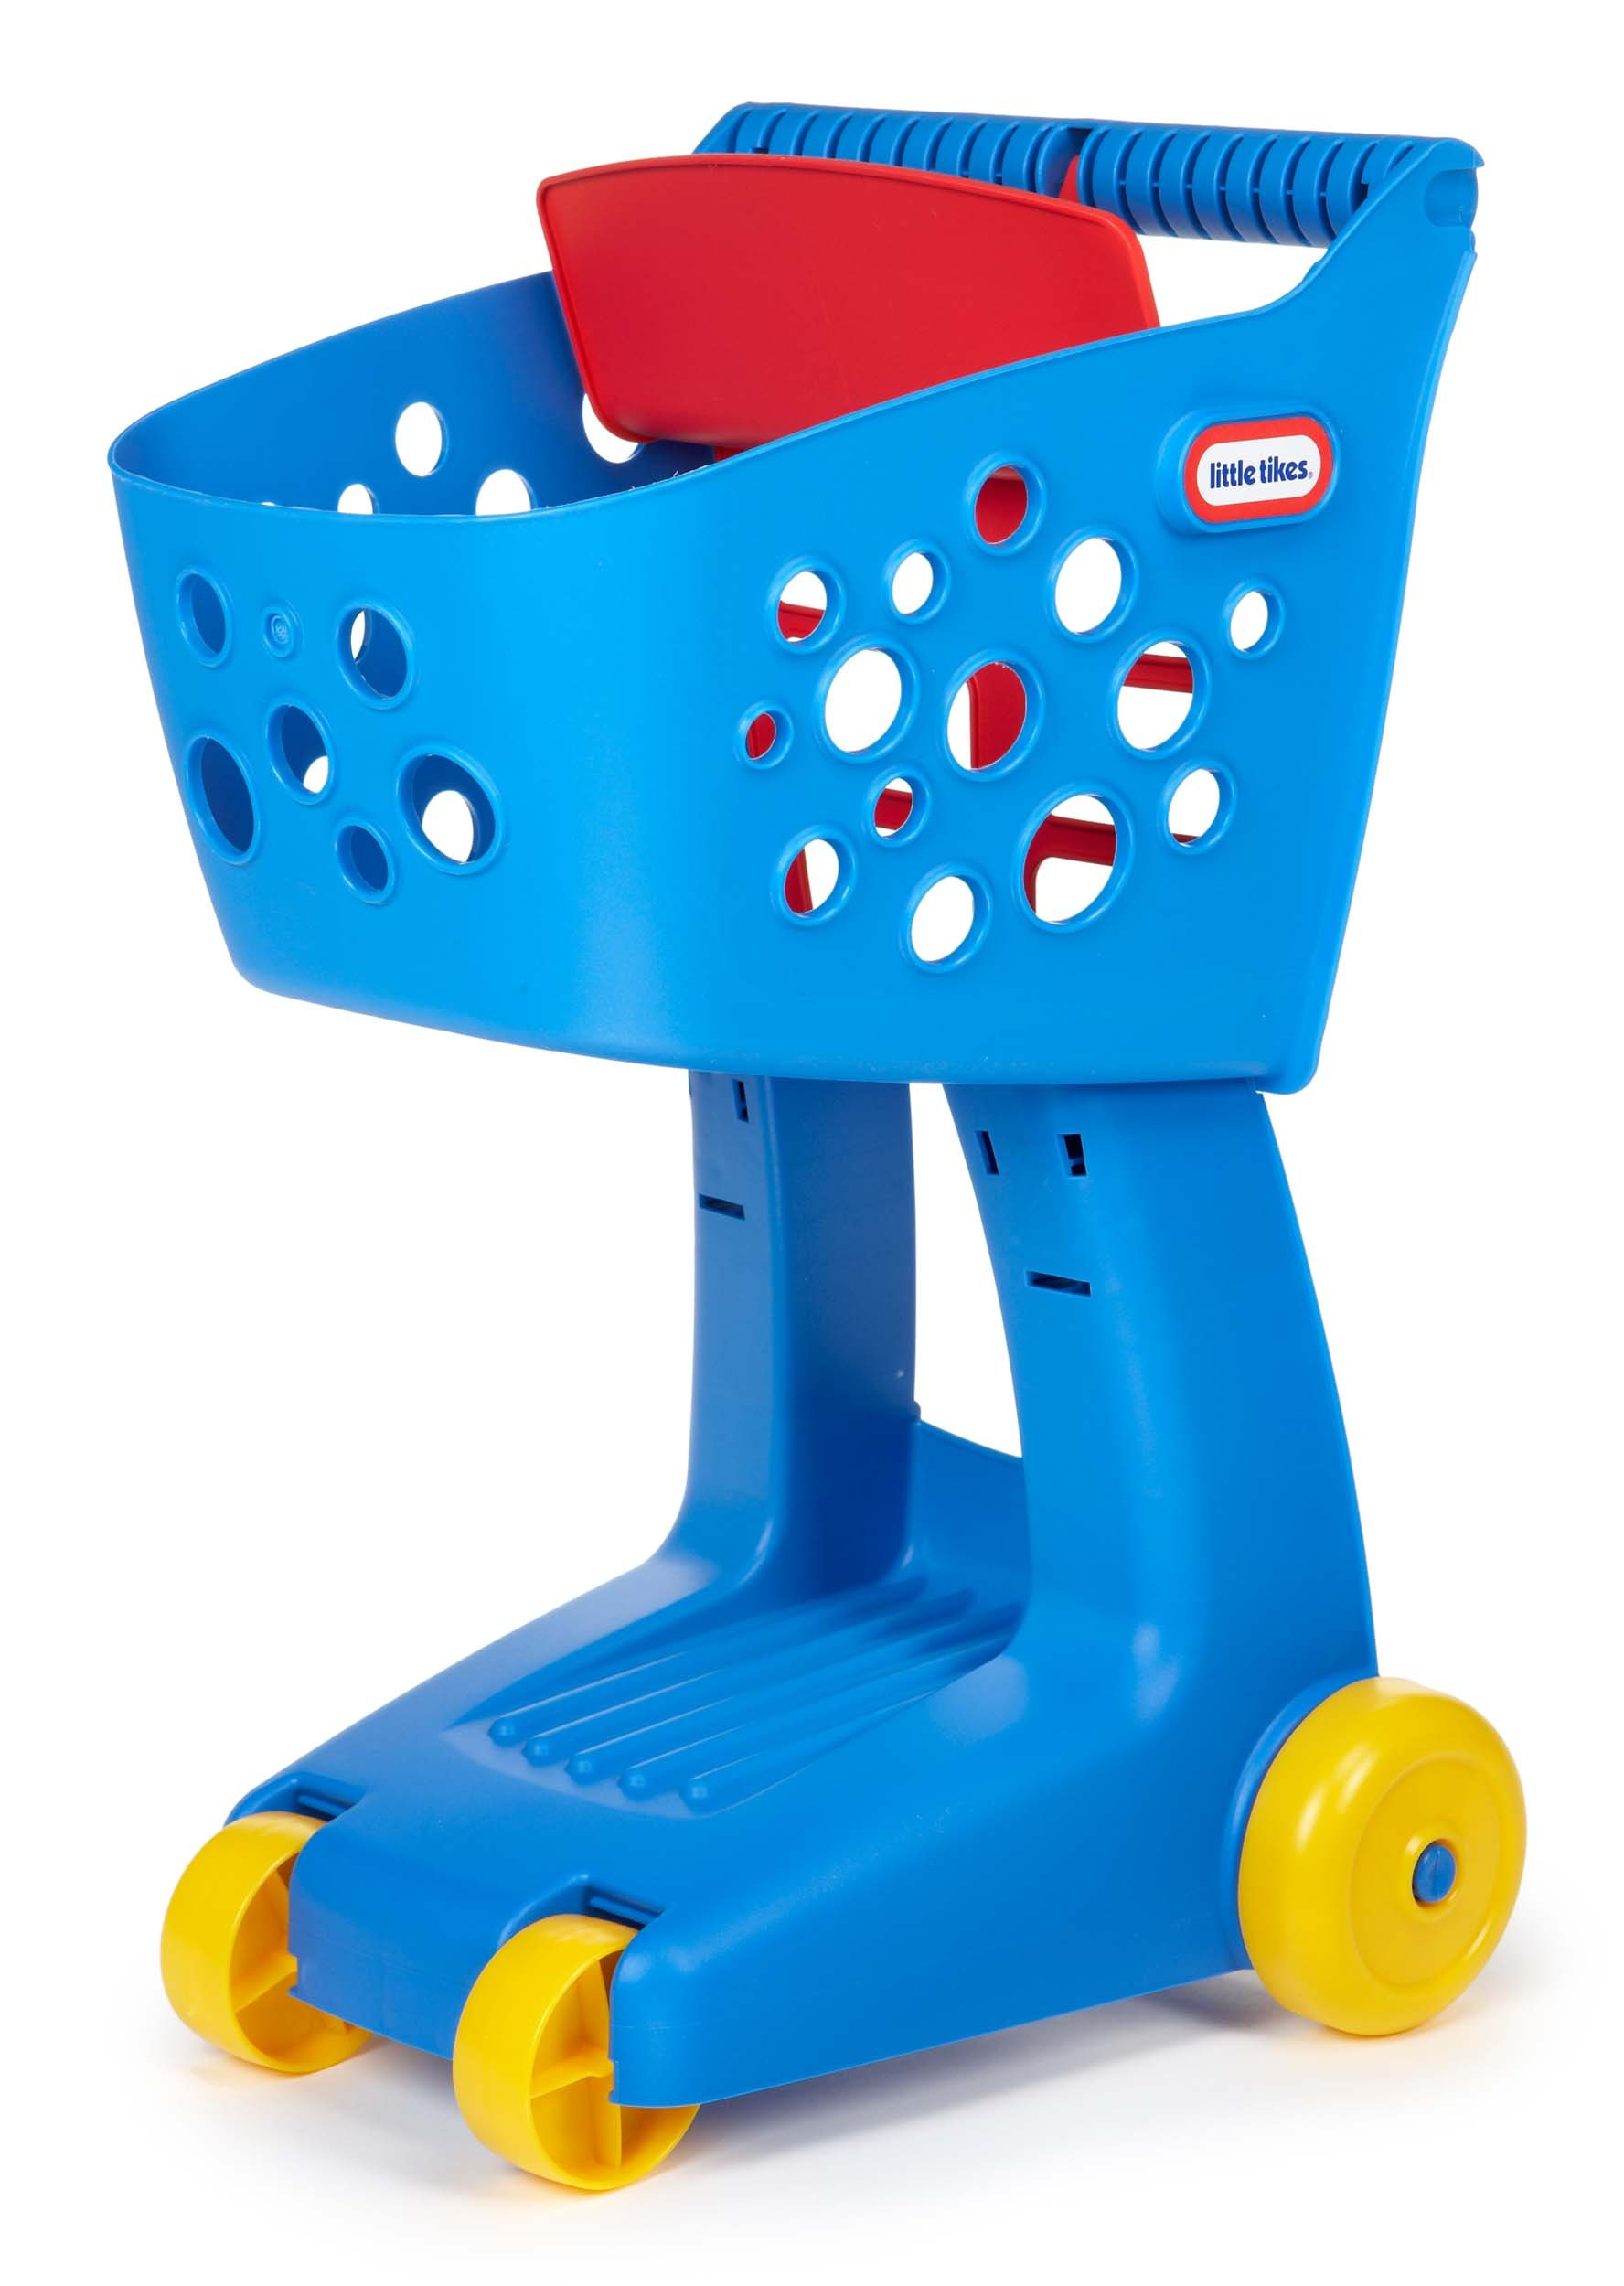 Little Tikes Lil' Shopper - Blue by Little Tikes